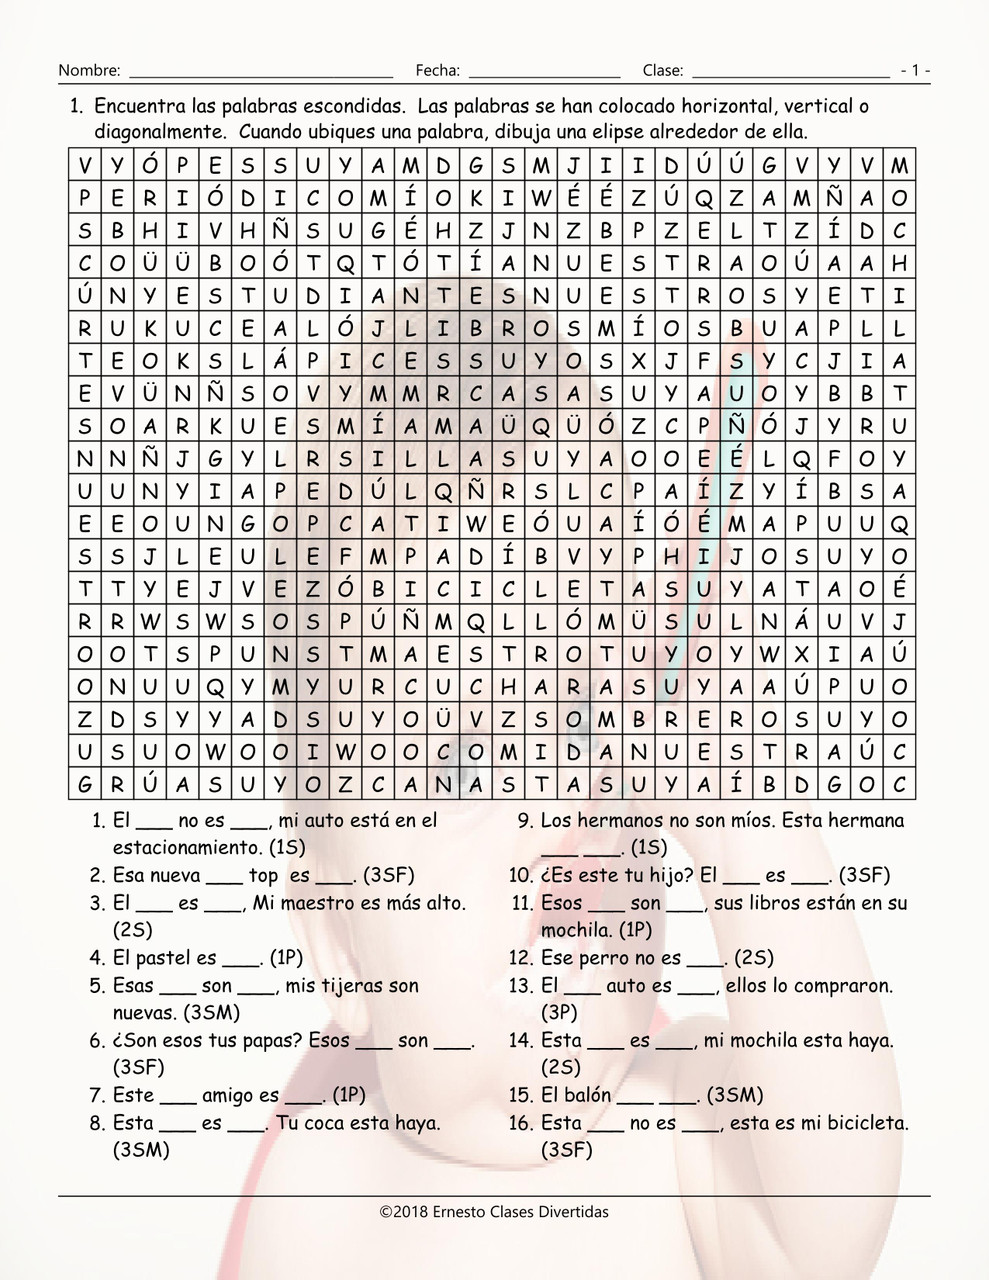 Possessive Pronouns Spanish Word Search Worksheet - Amped Up Learning [ 1280 x 989 Pixel ]